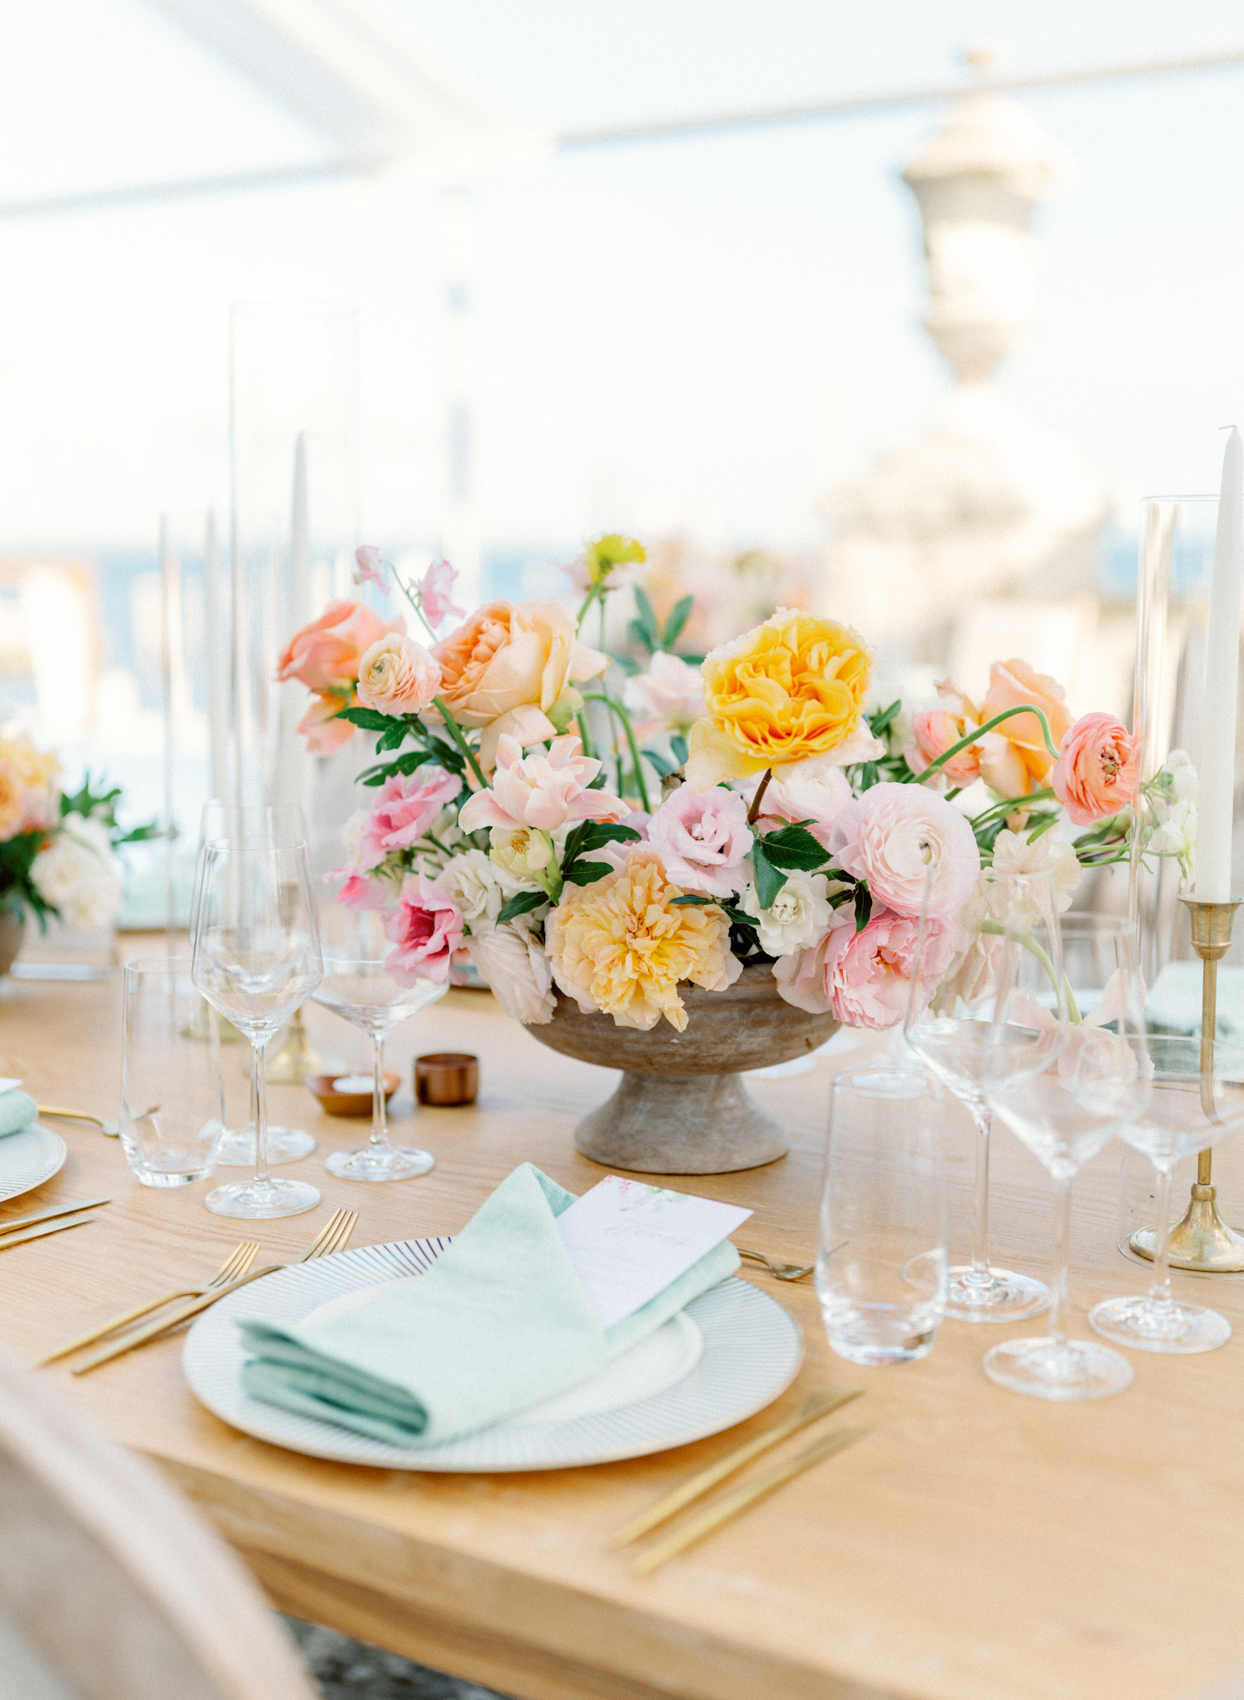 wooden table with pastel place setting and floral centerpiece